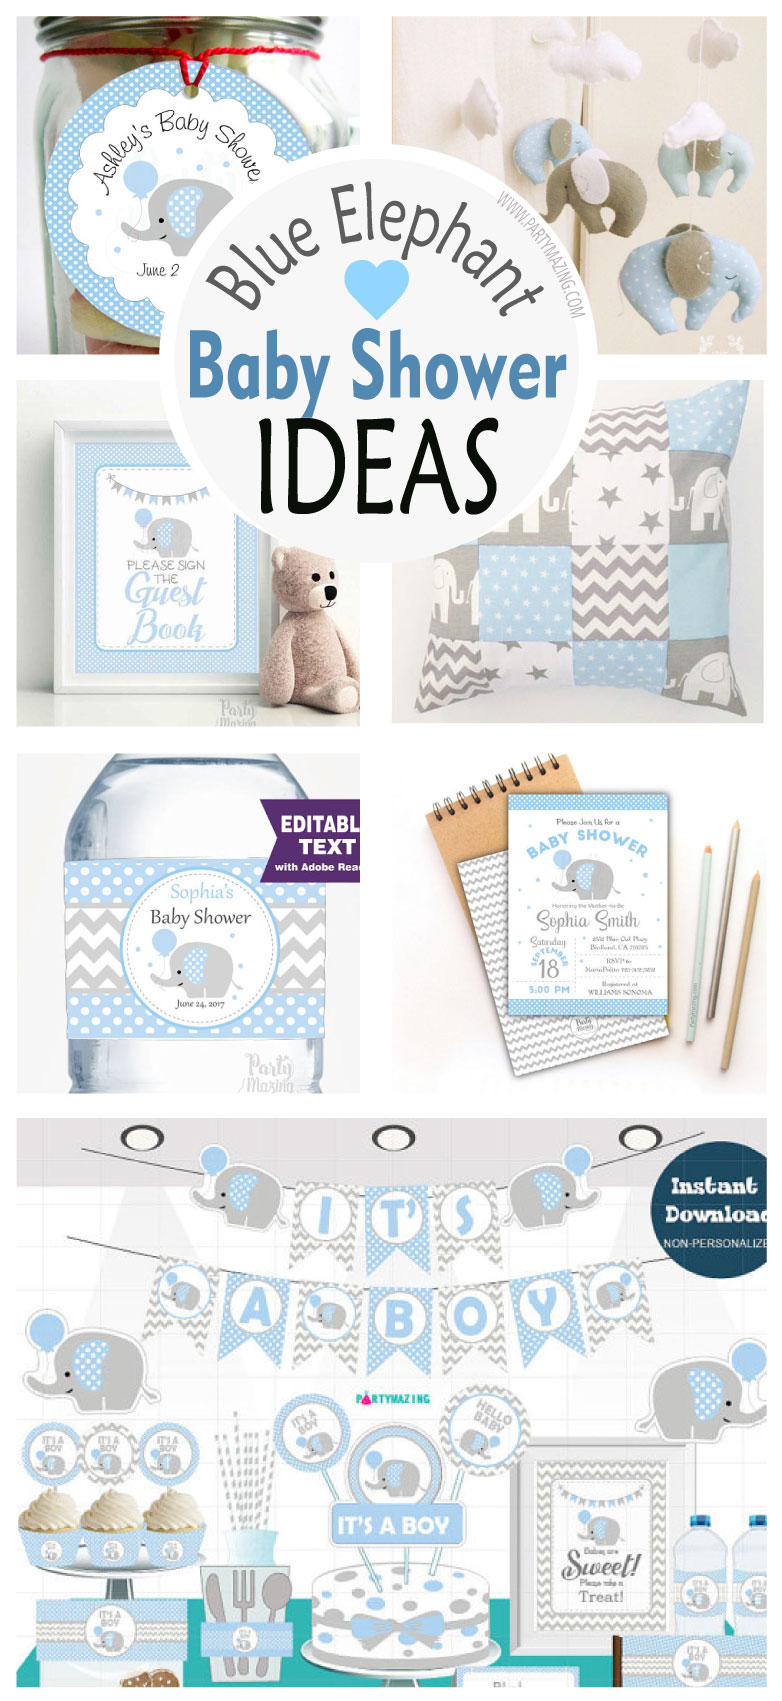 themed shower homemade south for favors elephant cute themes decorations use boy sports ideas easy little a cheap diy or free decoration crown baby bowl africa ritzy monkey basket pinterest